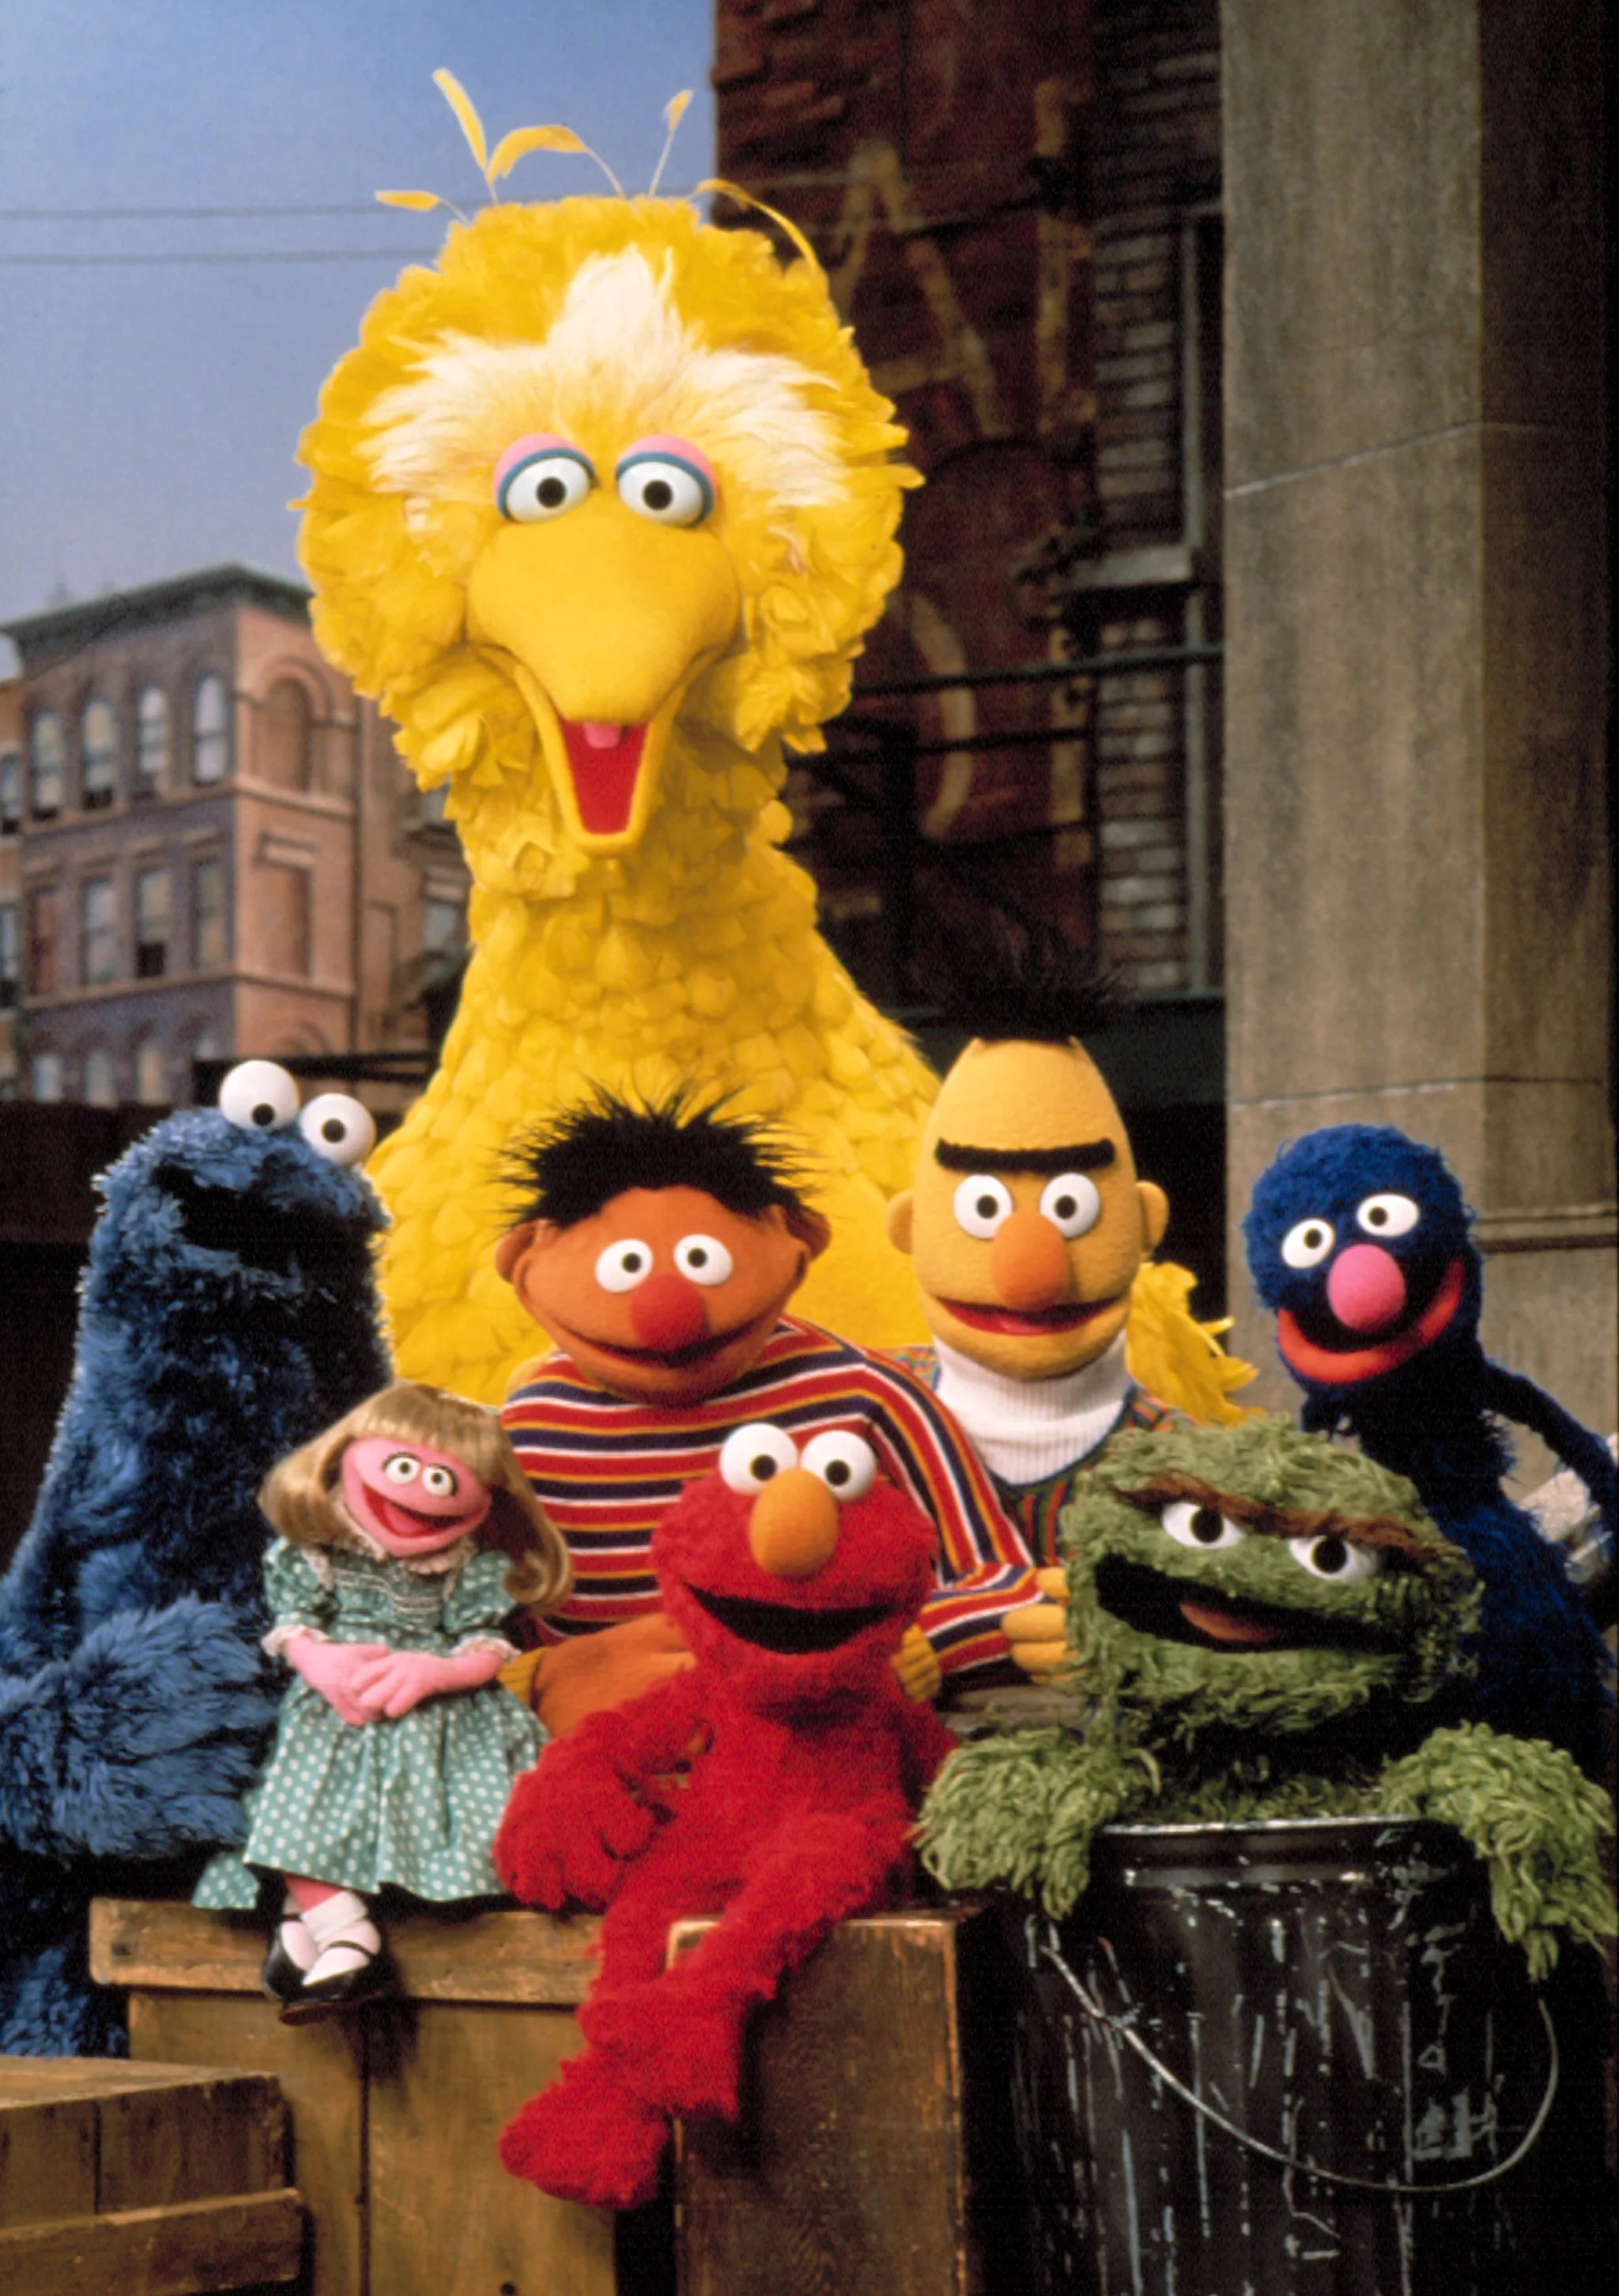 Why I Loved Sesame Street As A Child